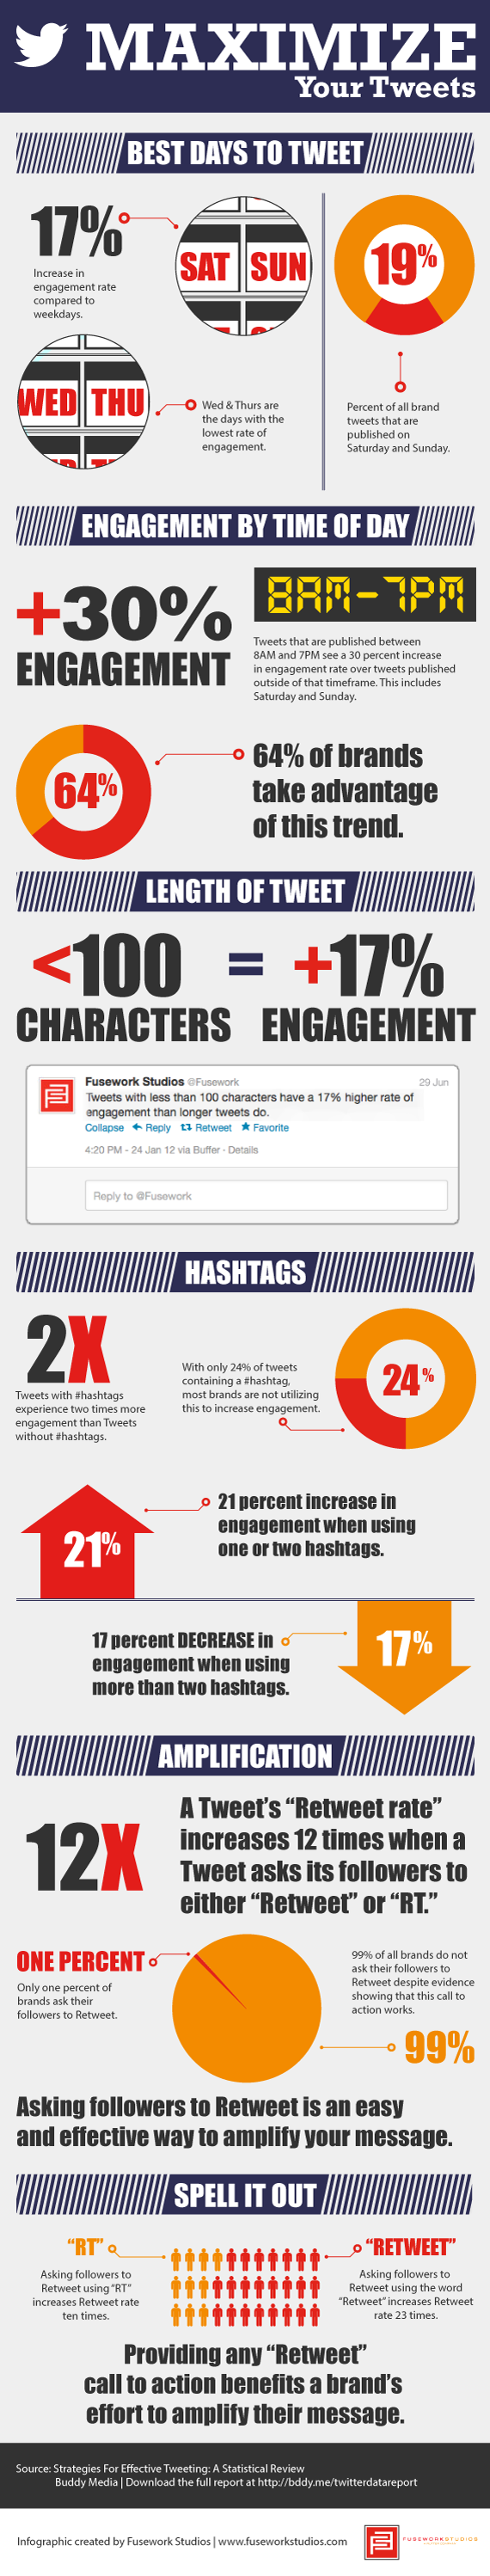 Maximizing Your Tweets Infographic